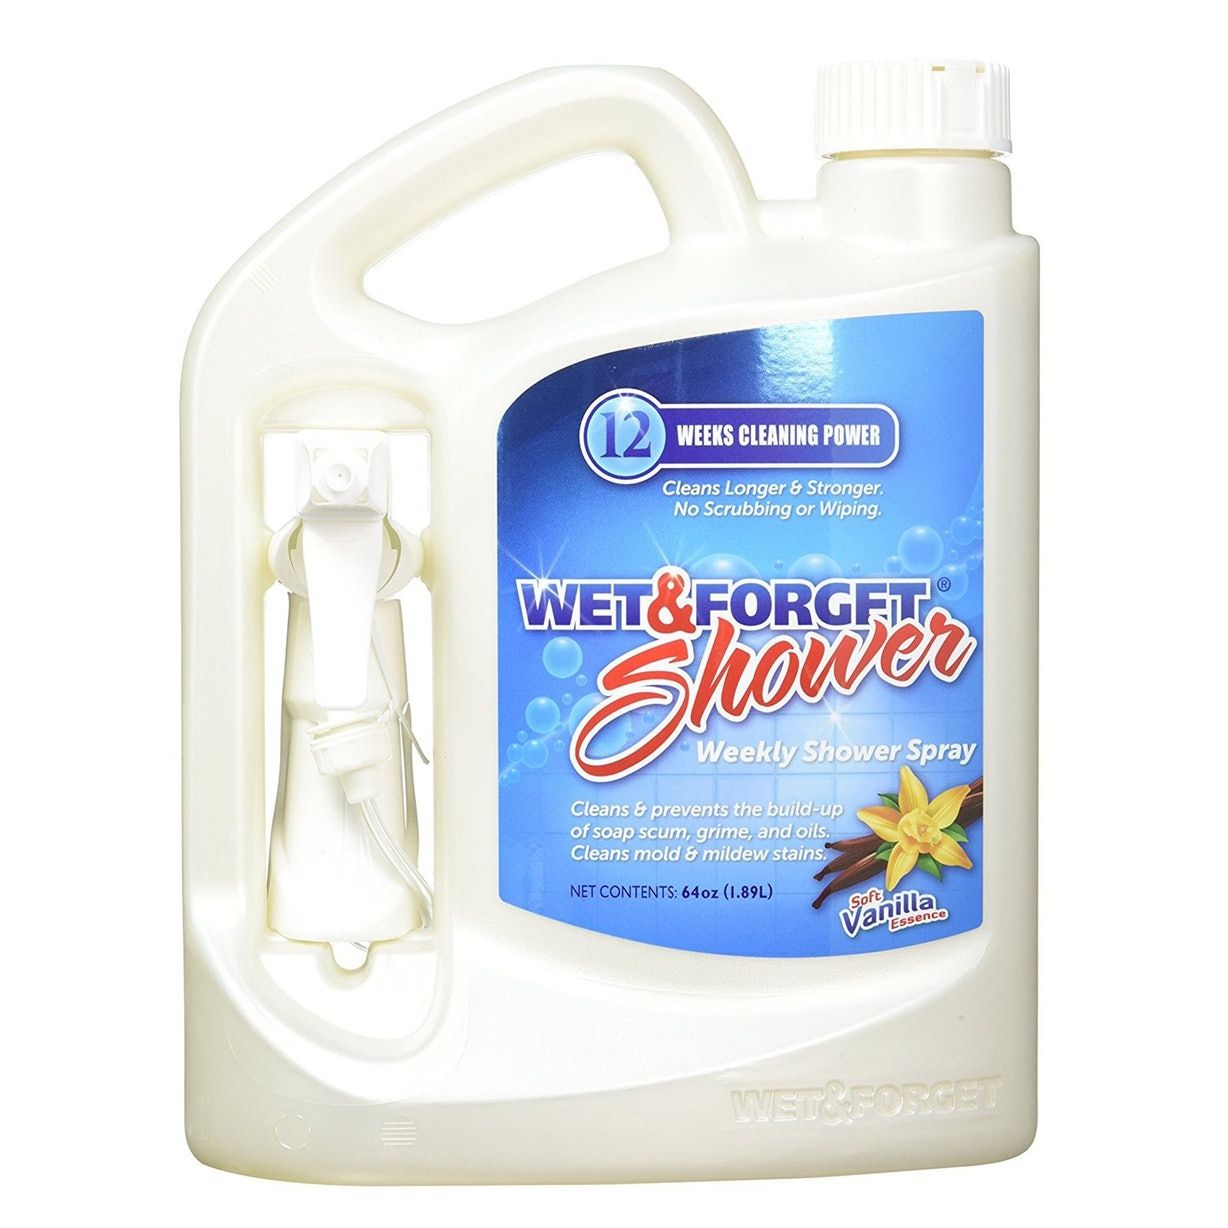 67d64db8e4b6eef879c665b1b3153aaf - Qvc Uk Gardening Wet And Forget